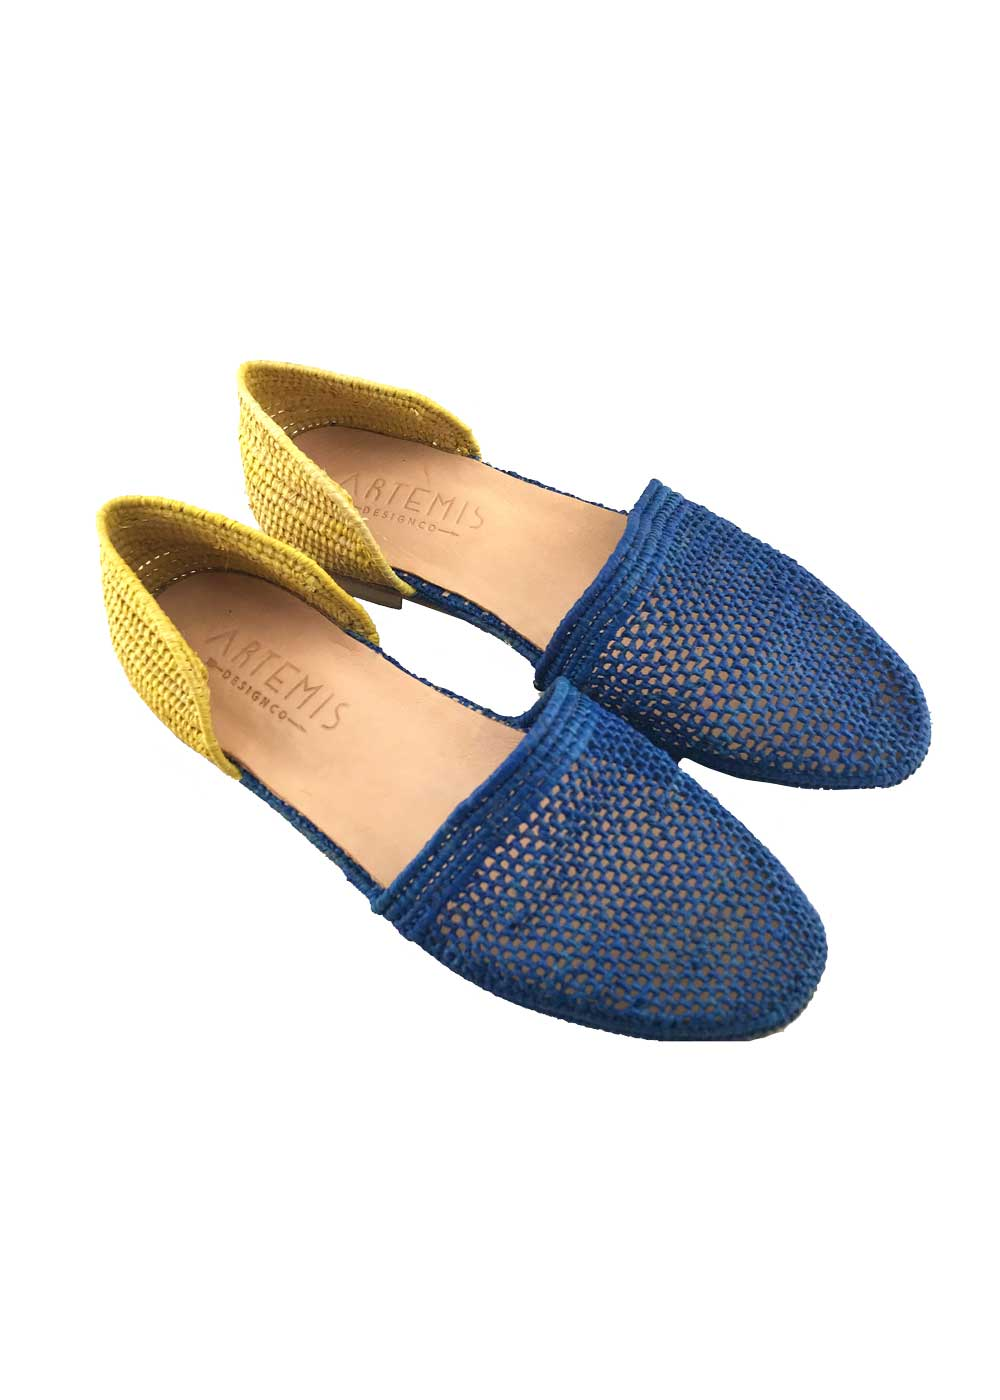 Archived Women's - Size 38 (US 8-8.5) Blue/Yellow Raffia Orsay Sandals